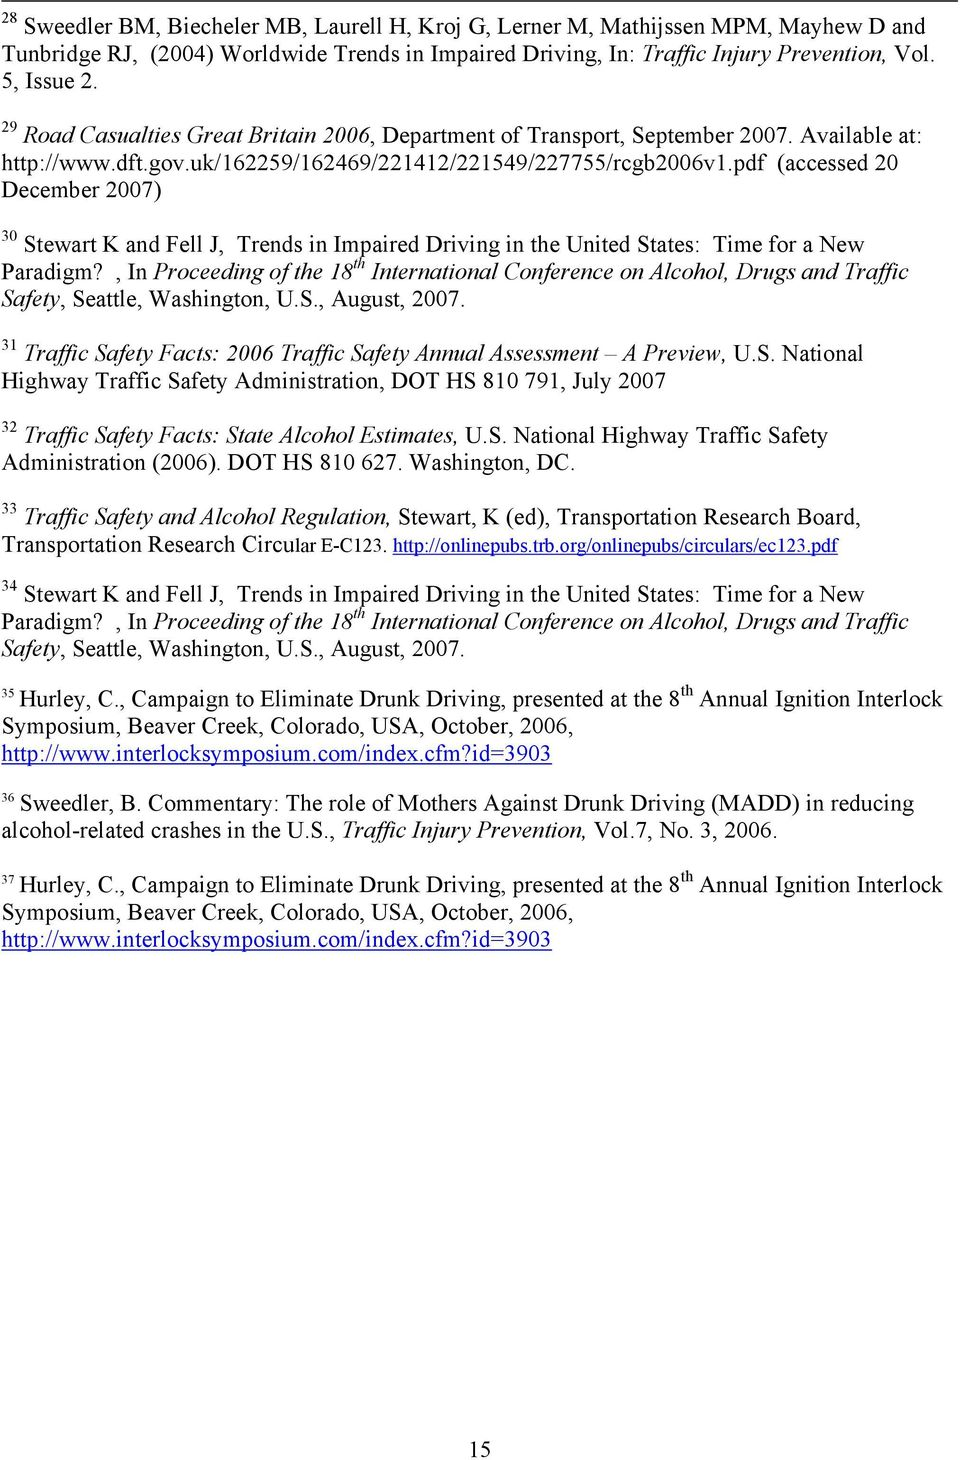 pdf (accessed 20 December 2007) 30 Stewart K and Fell J, Trends in Impaired Driving in the United States: Time for a New Paradigm?